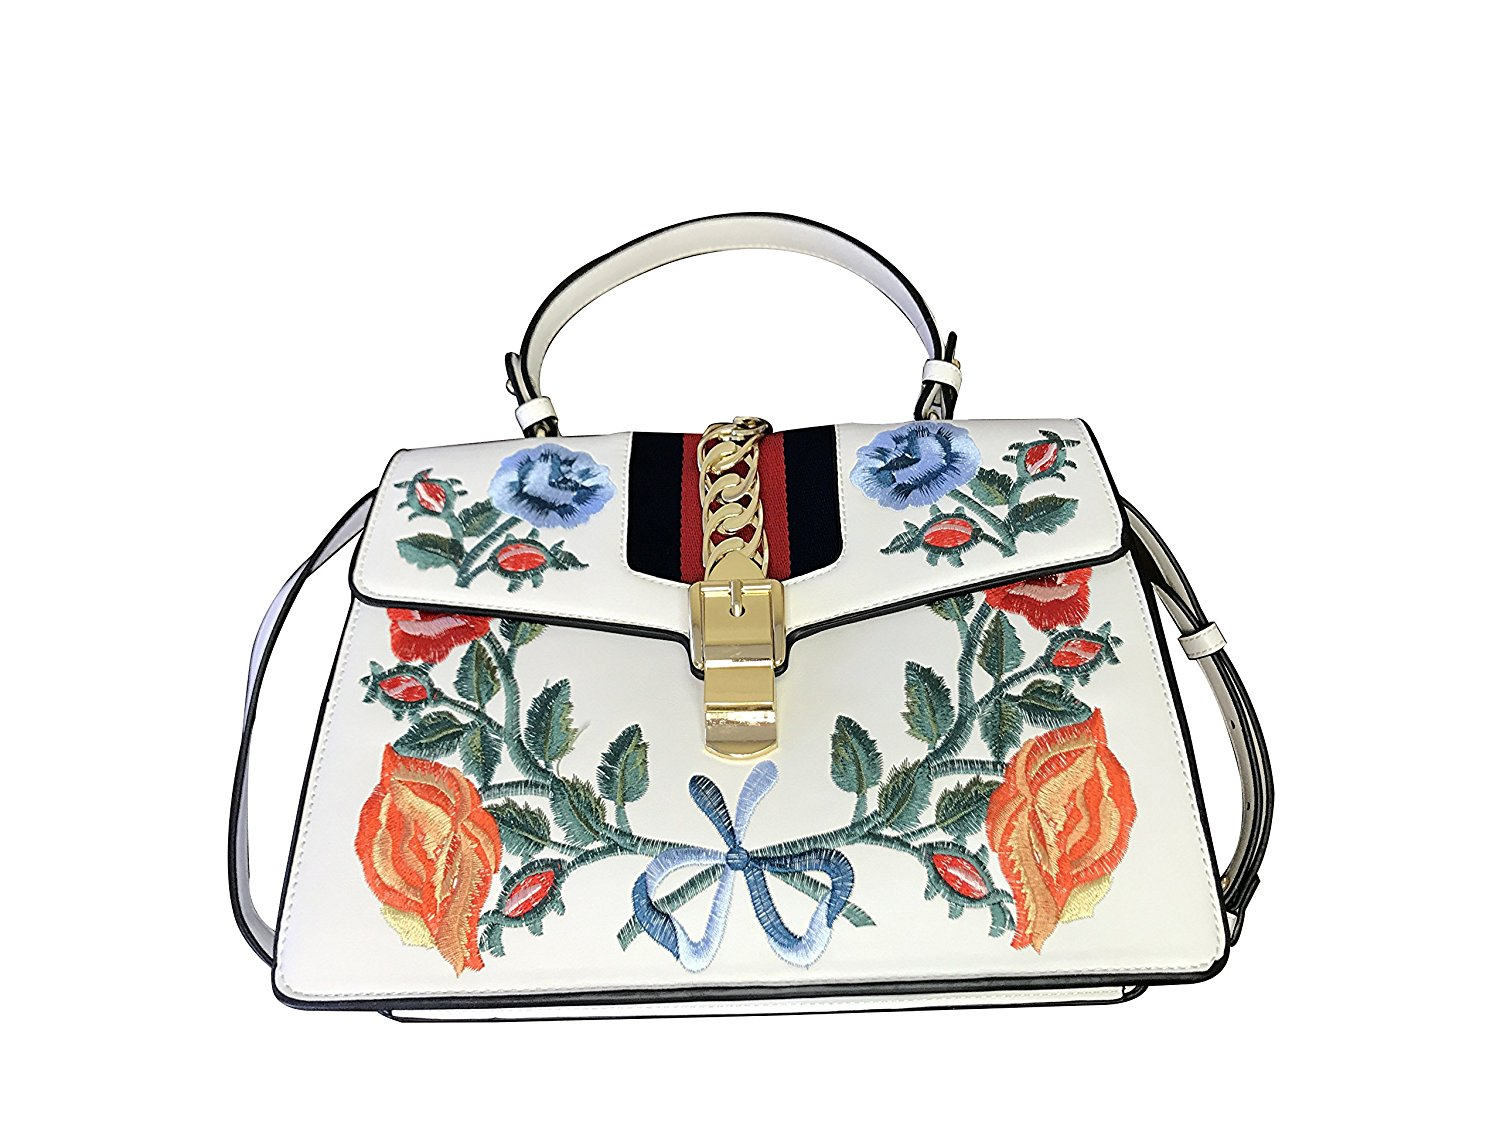 202db64af6f2 Get Quotations · Roses & Bows Embroidered Top Handle Inspired By Inzi  Handbags